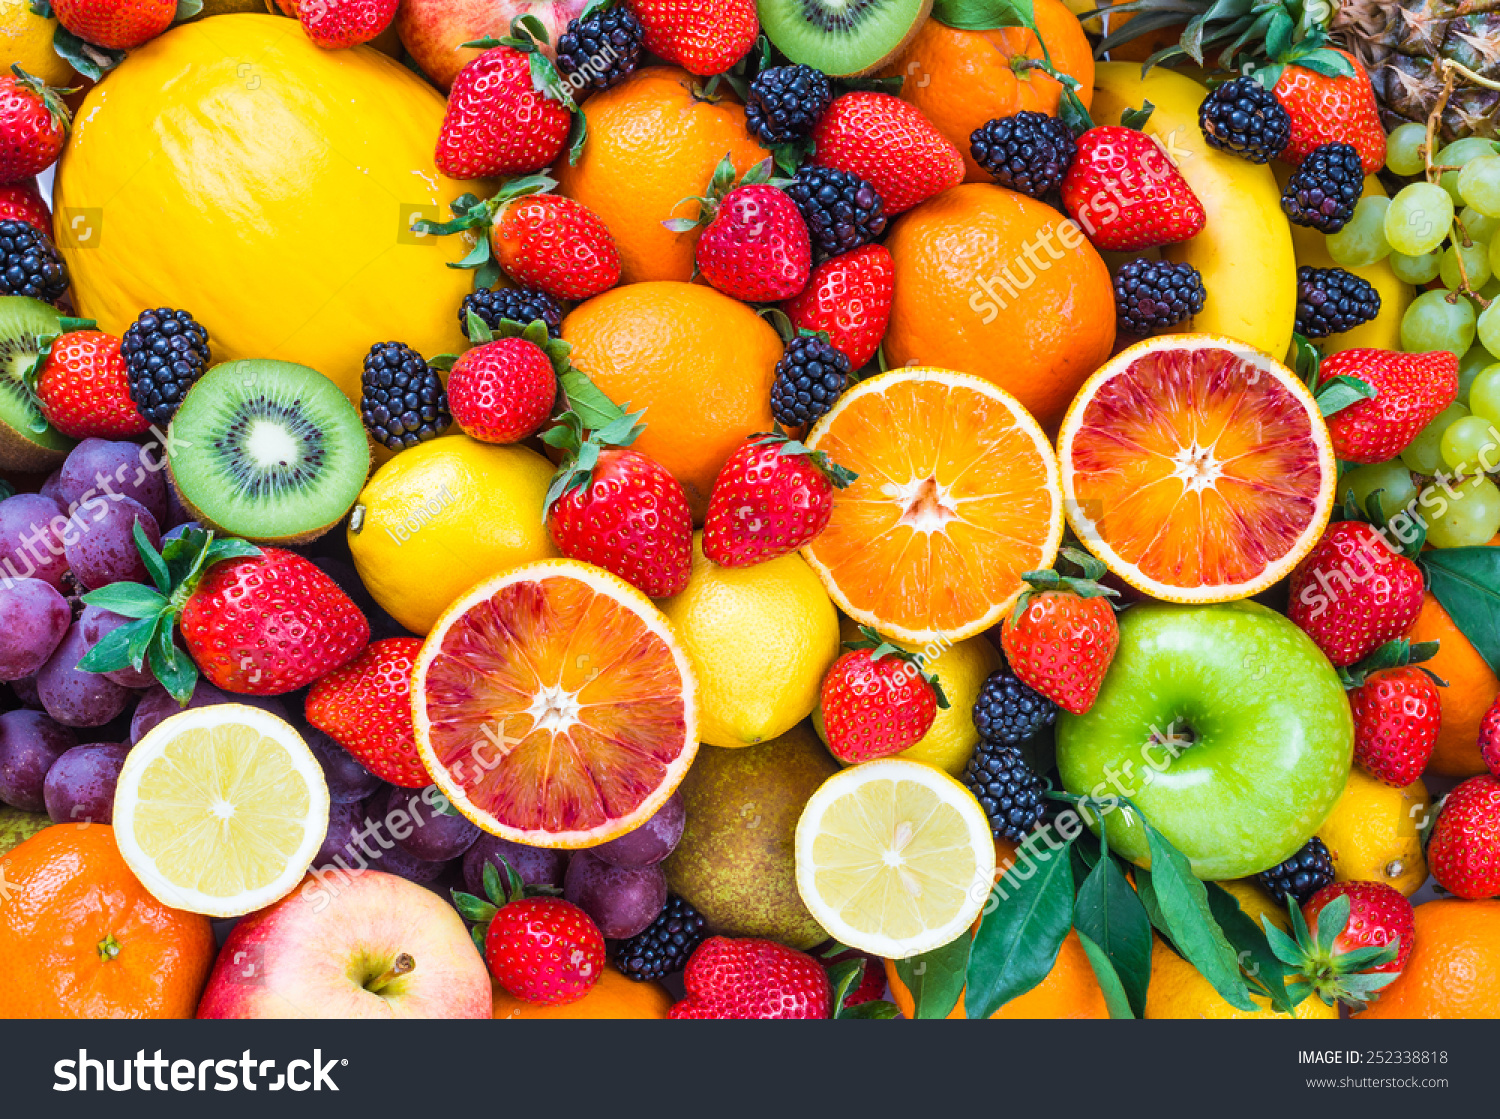 healthy food and fruits healthy fruits pictures